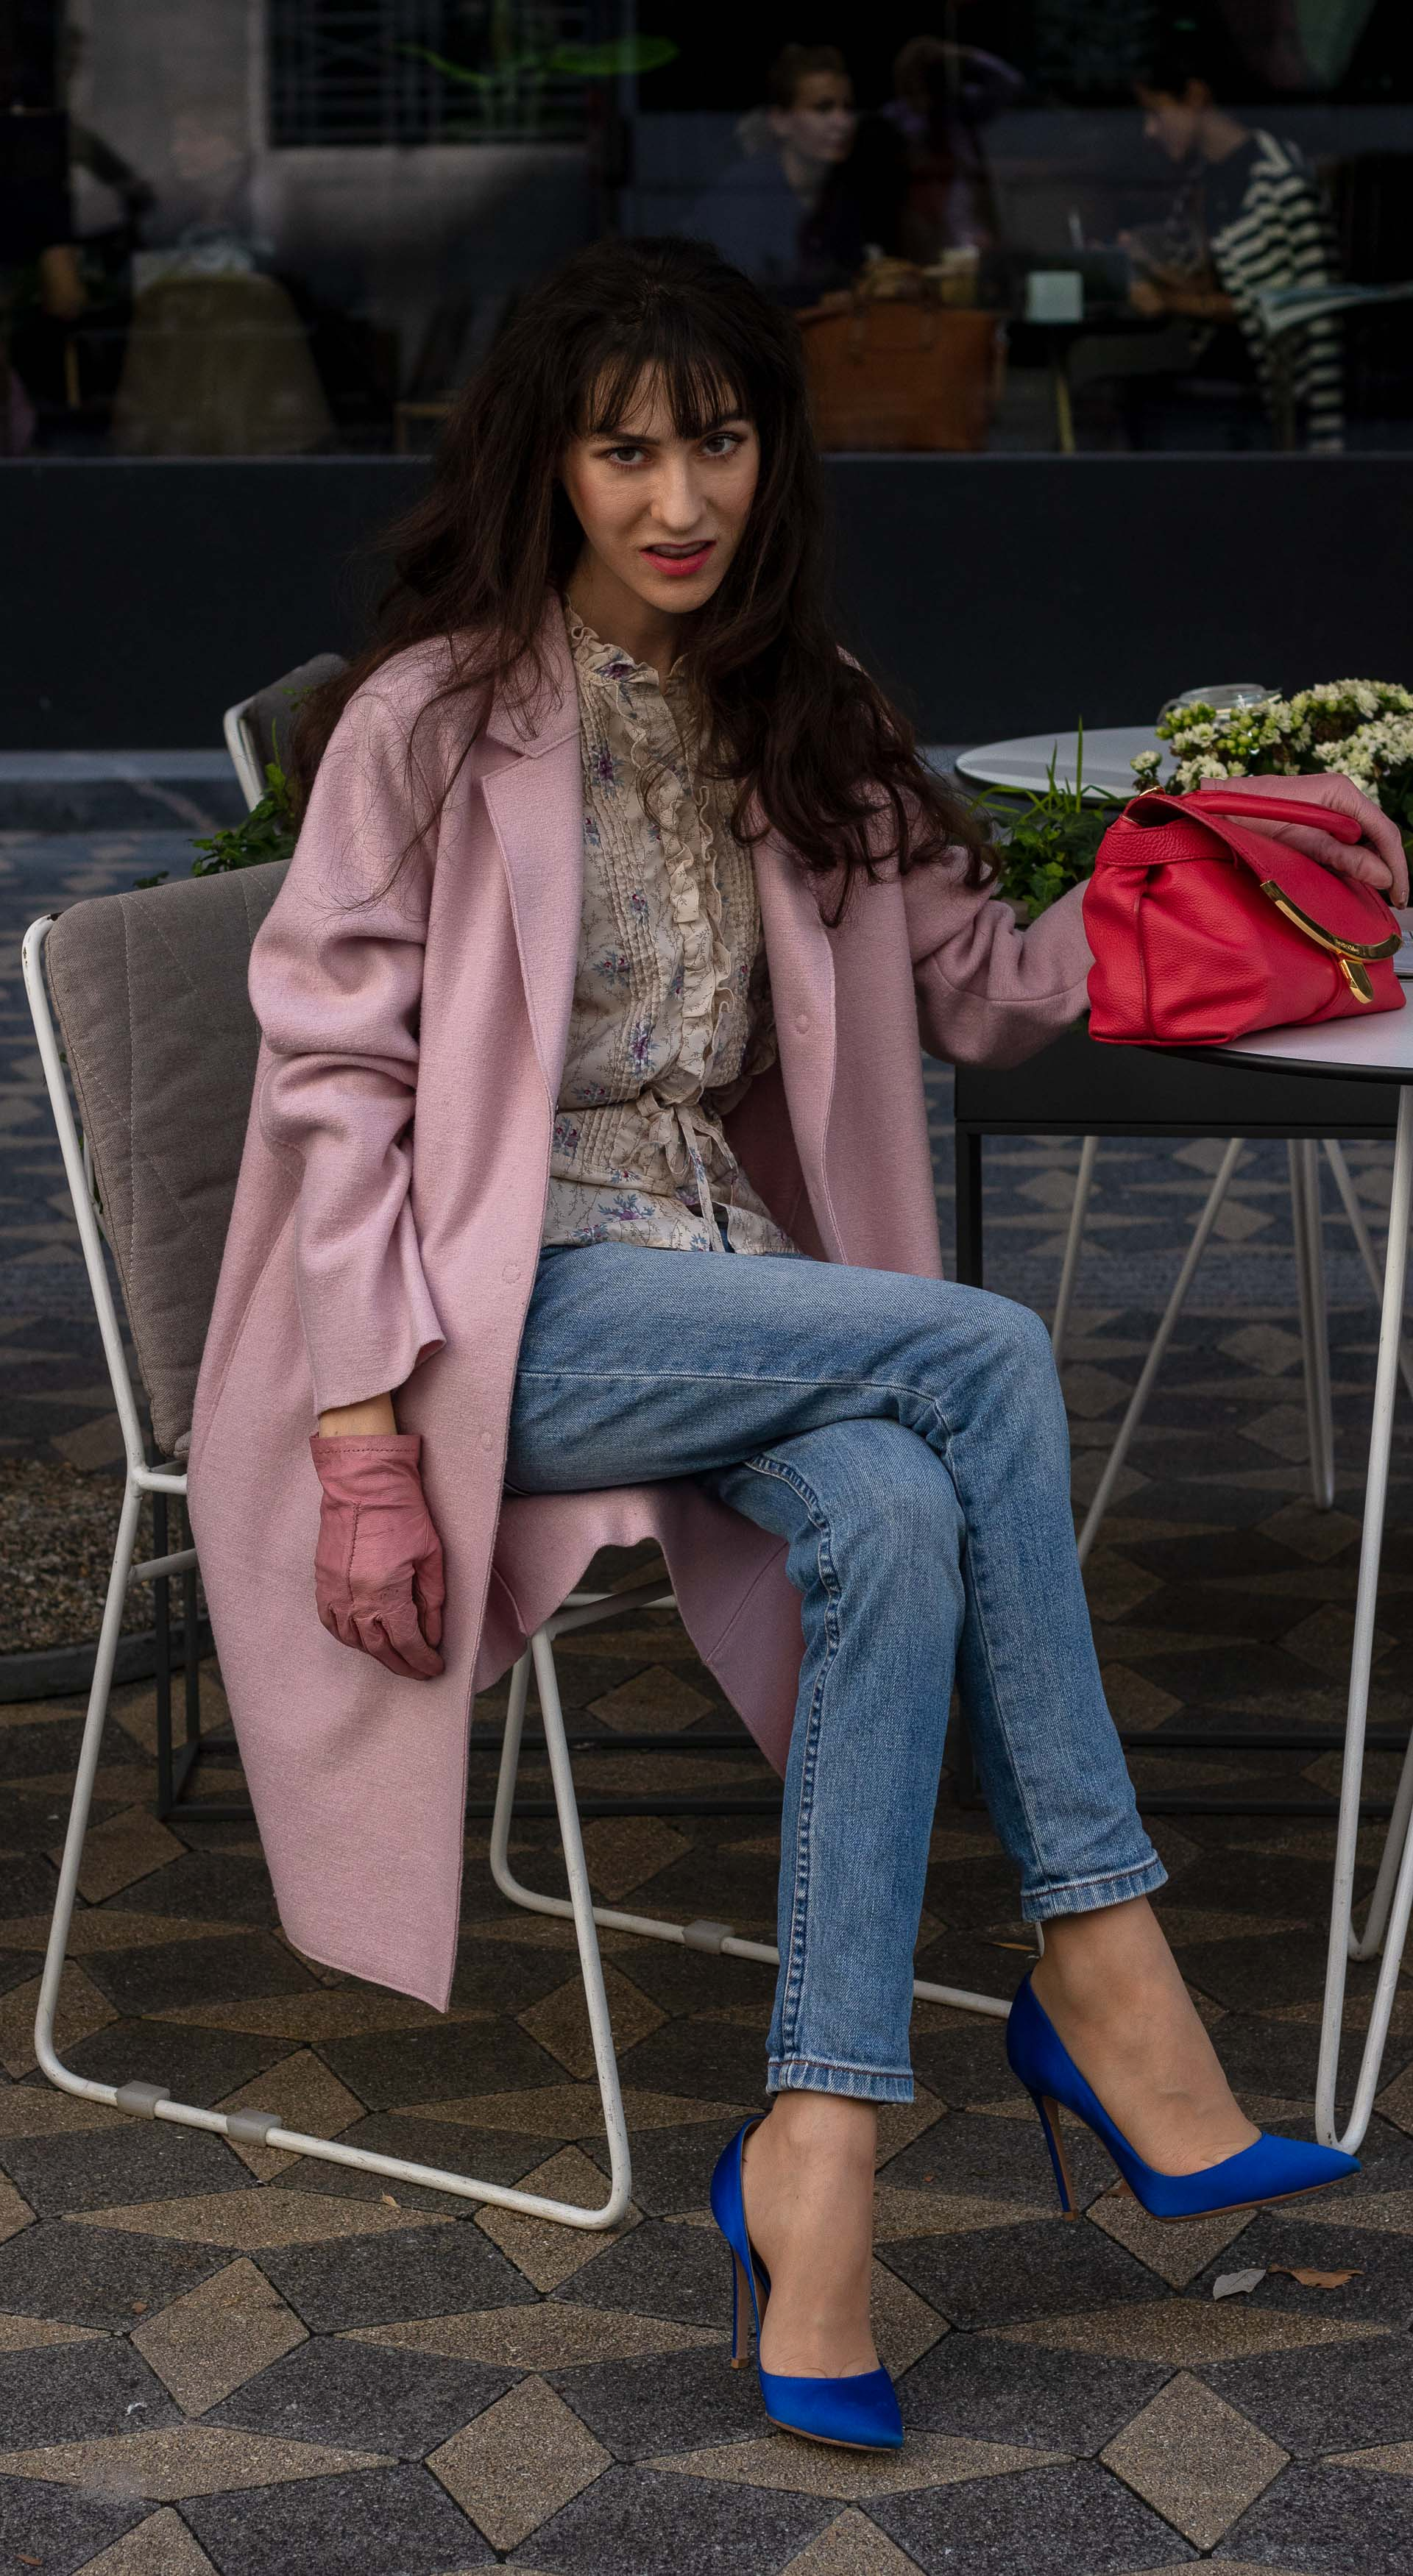 Fashion blogger Veronika Lipar of Brunette from Wall Street wearing Harris Wharf London pink coat blue A.P.C. Paris jeans floral blouse pink gloves Gianvito Rossi blue heels for brunch in autumn